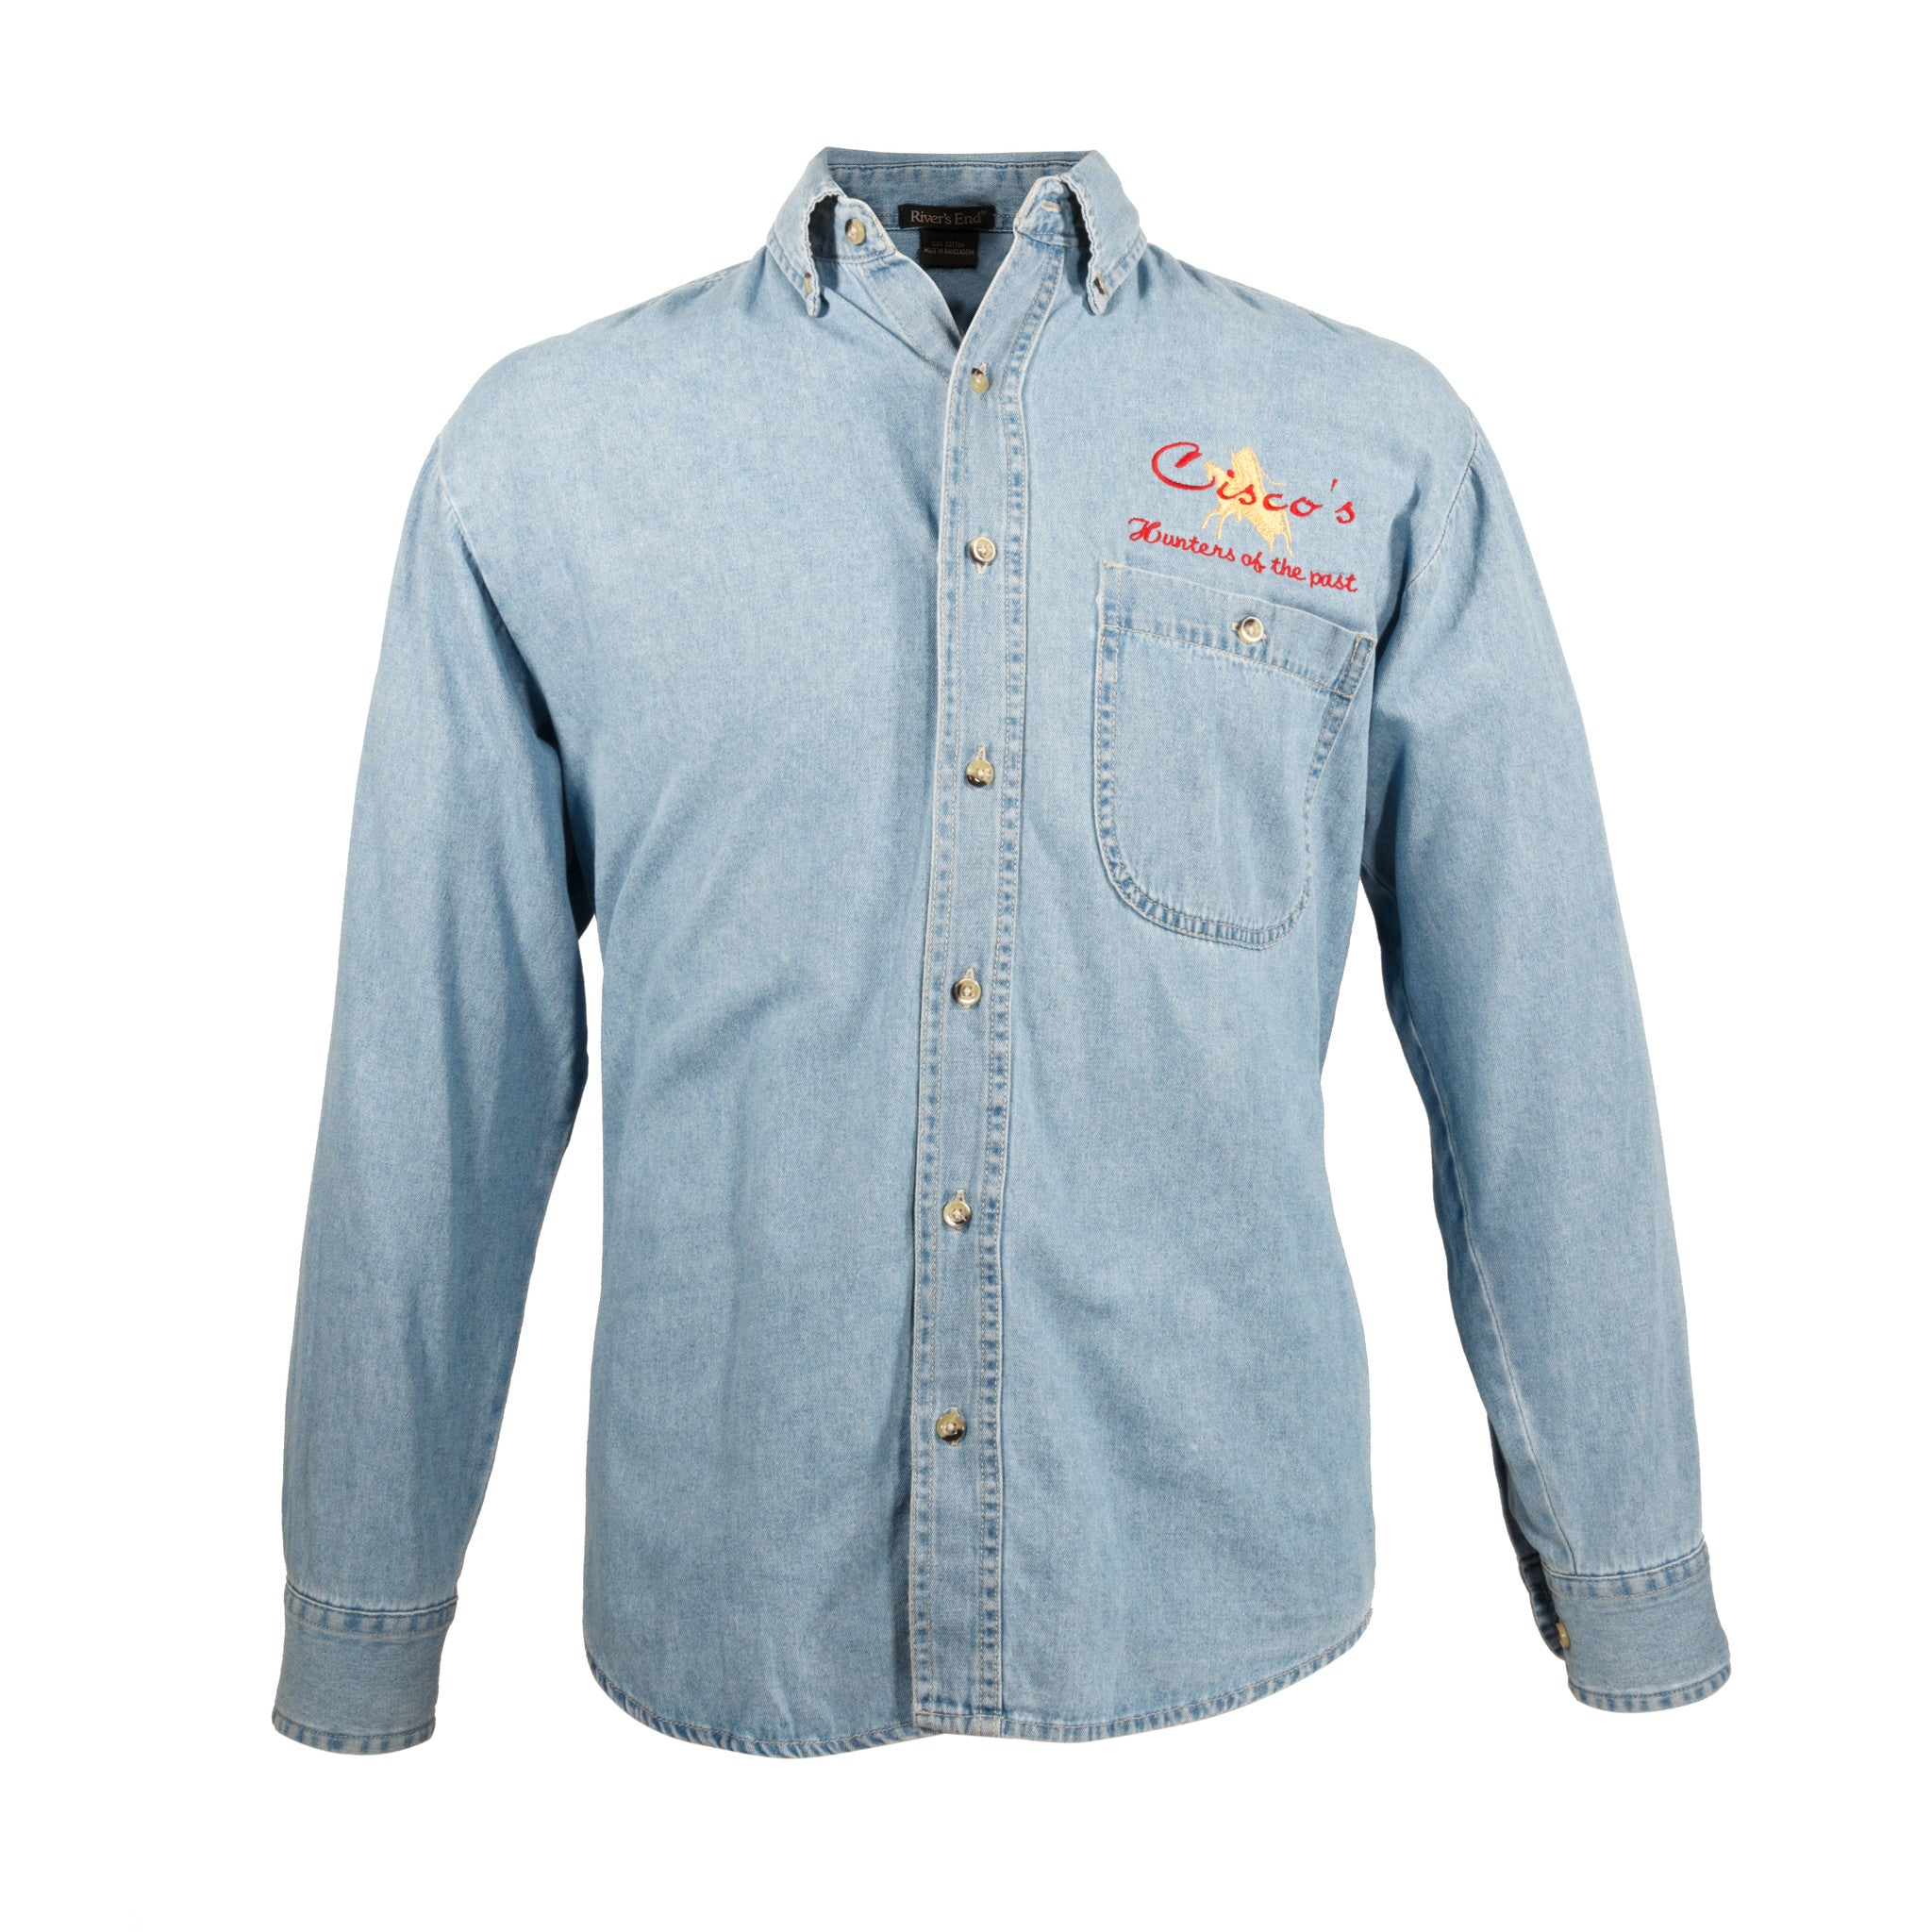 Cisco's Faded Denim Shirt cisco's shirts, cowboy and western: other: other, denim, logo wear, shirts